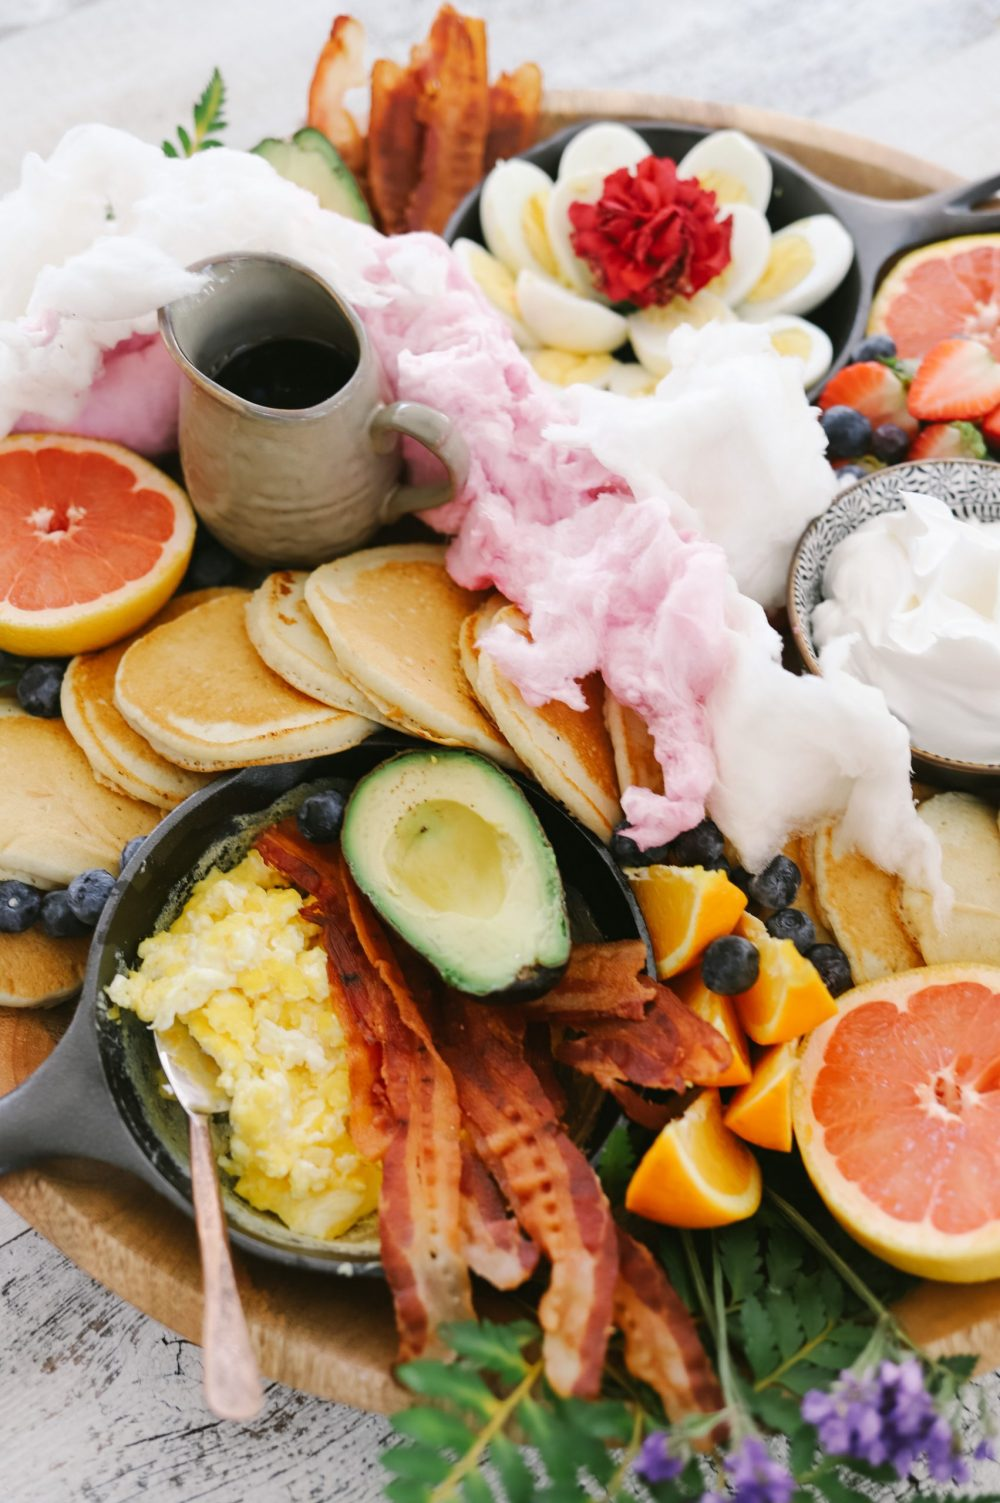 How to Make a Pancake Board That Looks as Delicious as It Tastes. The best Spring Breakfast Board |Pancake Board by popular Florida lifestyle blog, Fresh Mommy Blog: image of a pancake board with pancakes, grapefruit, blueberries, avocado, deviled eggs, bacon, scrambled eggs, and strawberries.